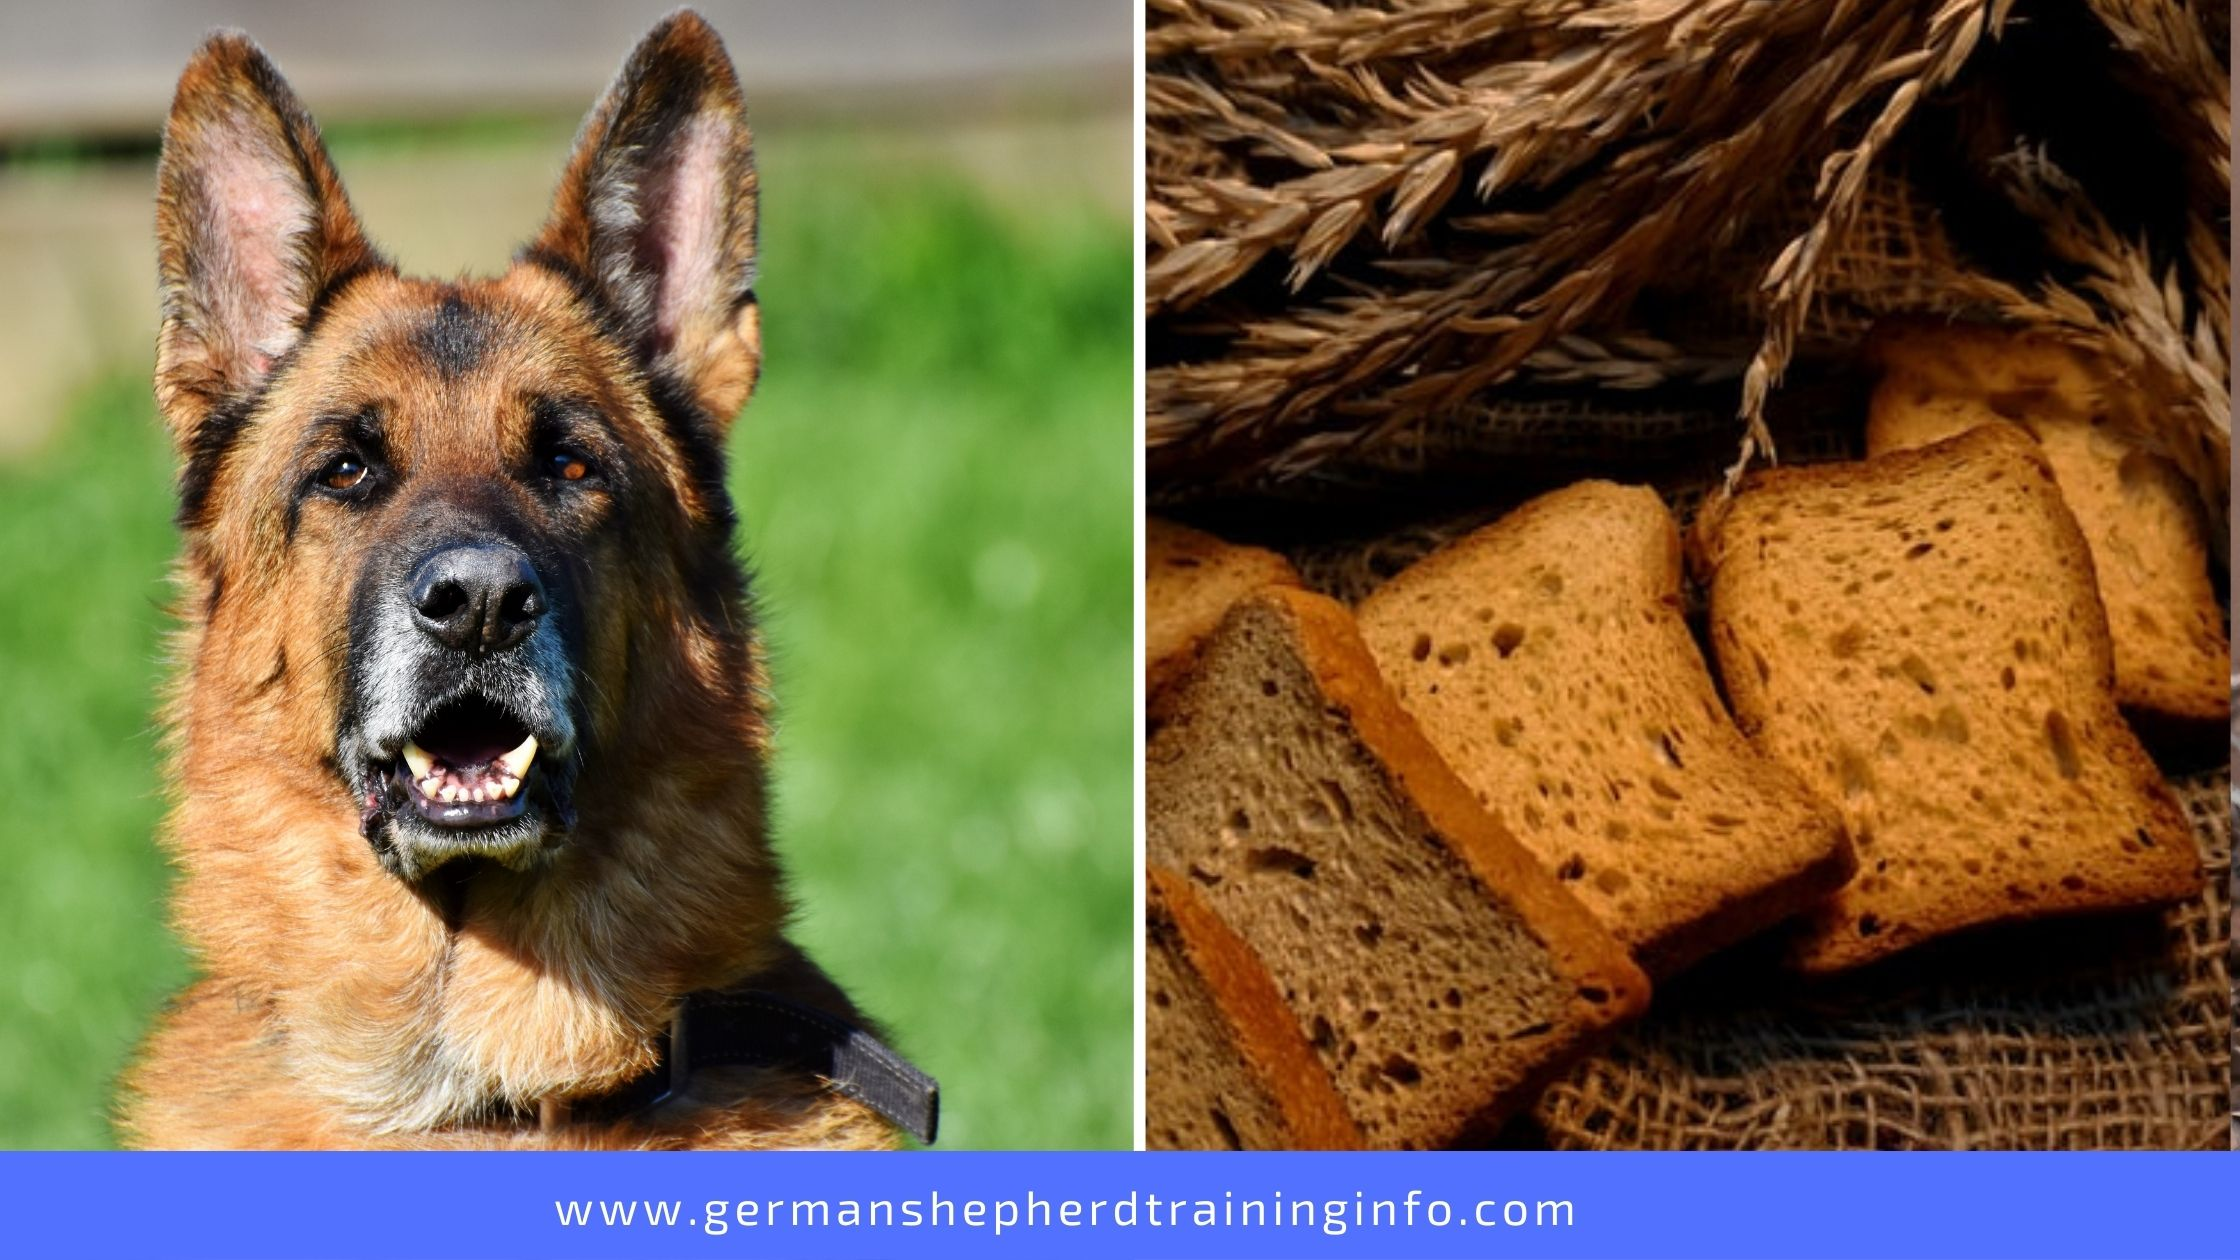 Can Dogs Eat Multigrain or Brown Bread?